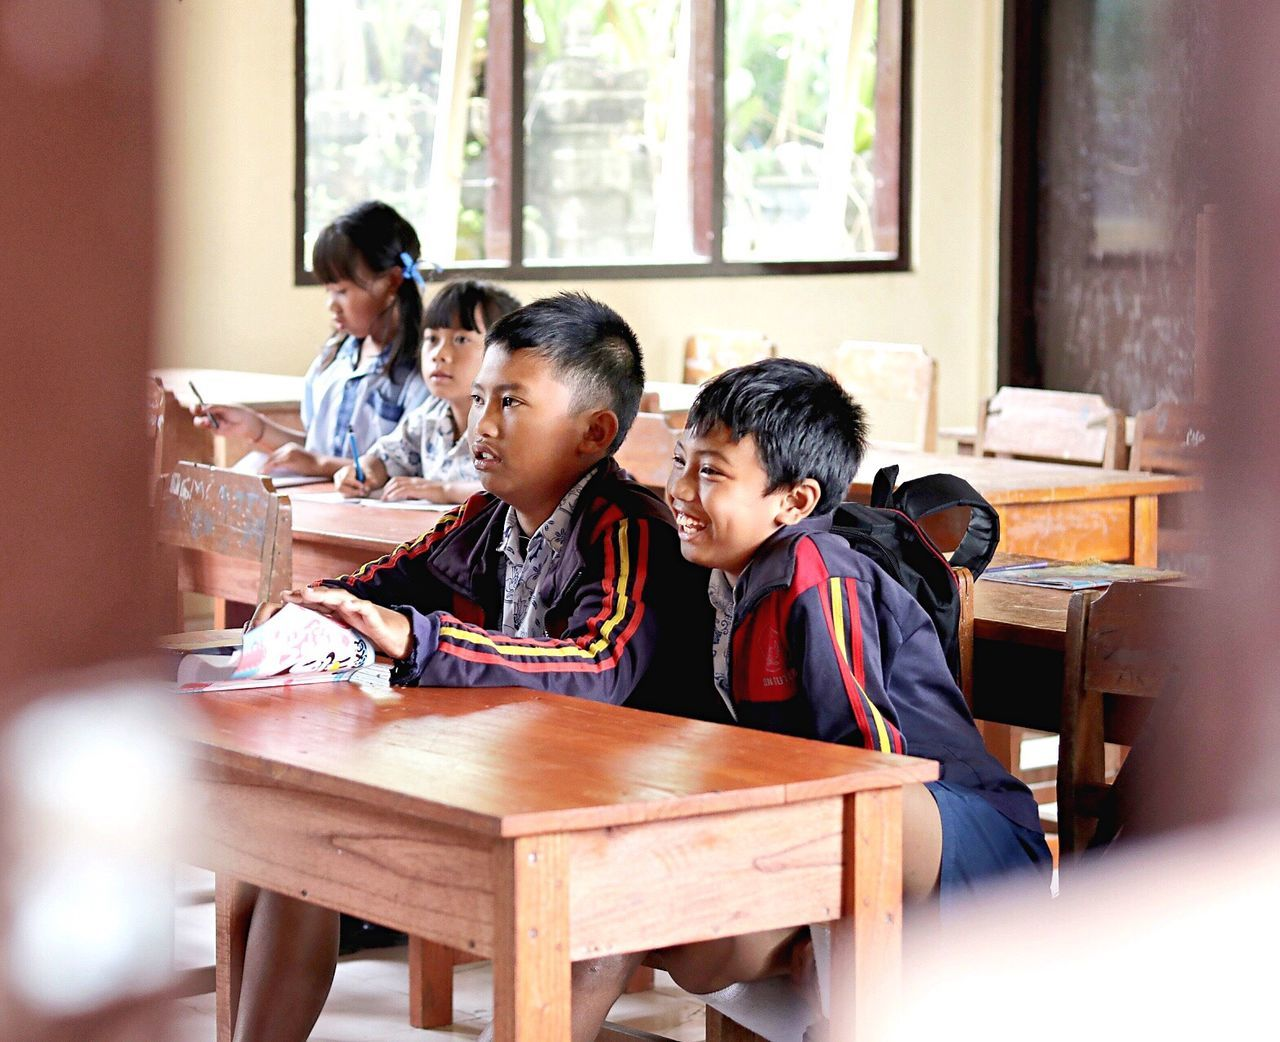 Priceless smile, that can't be bought || Check This Out Hidden Gems  Kids Student School Teaching Bali Kintamani Class